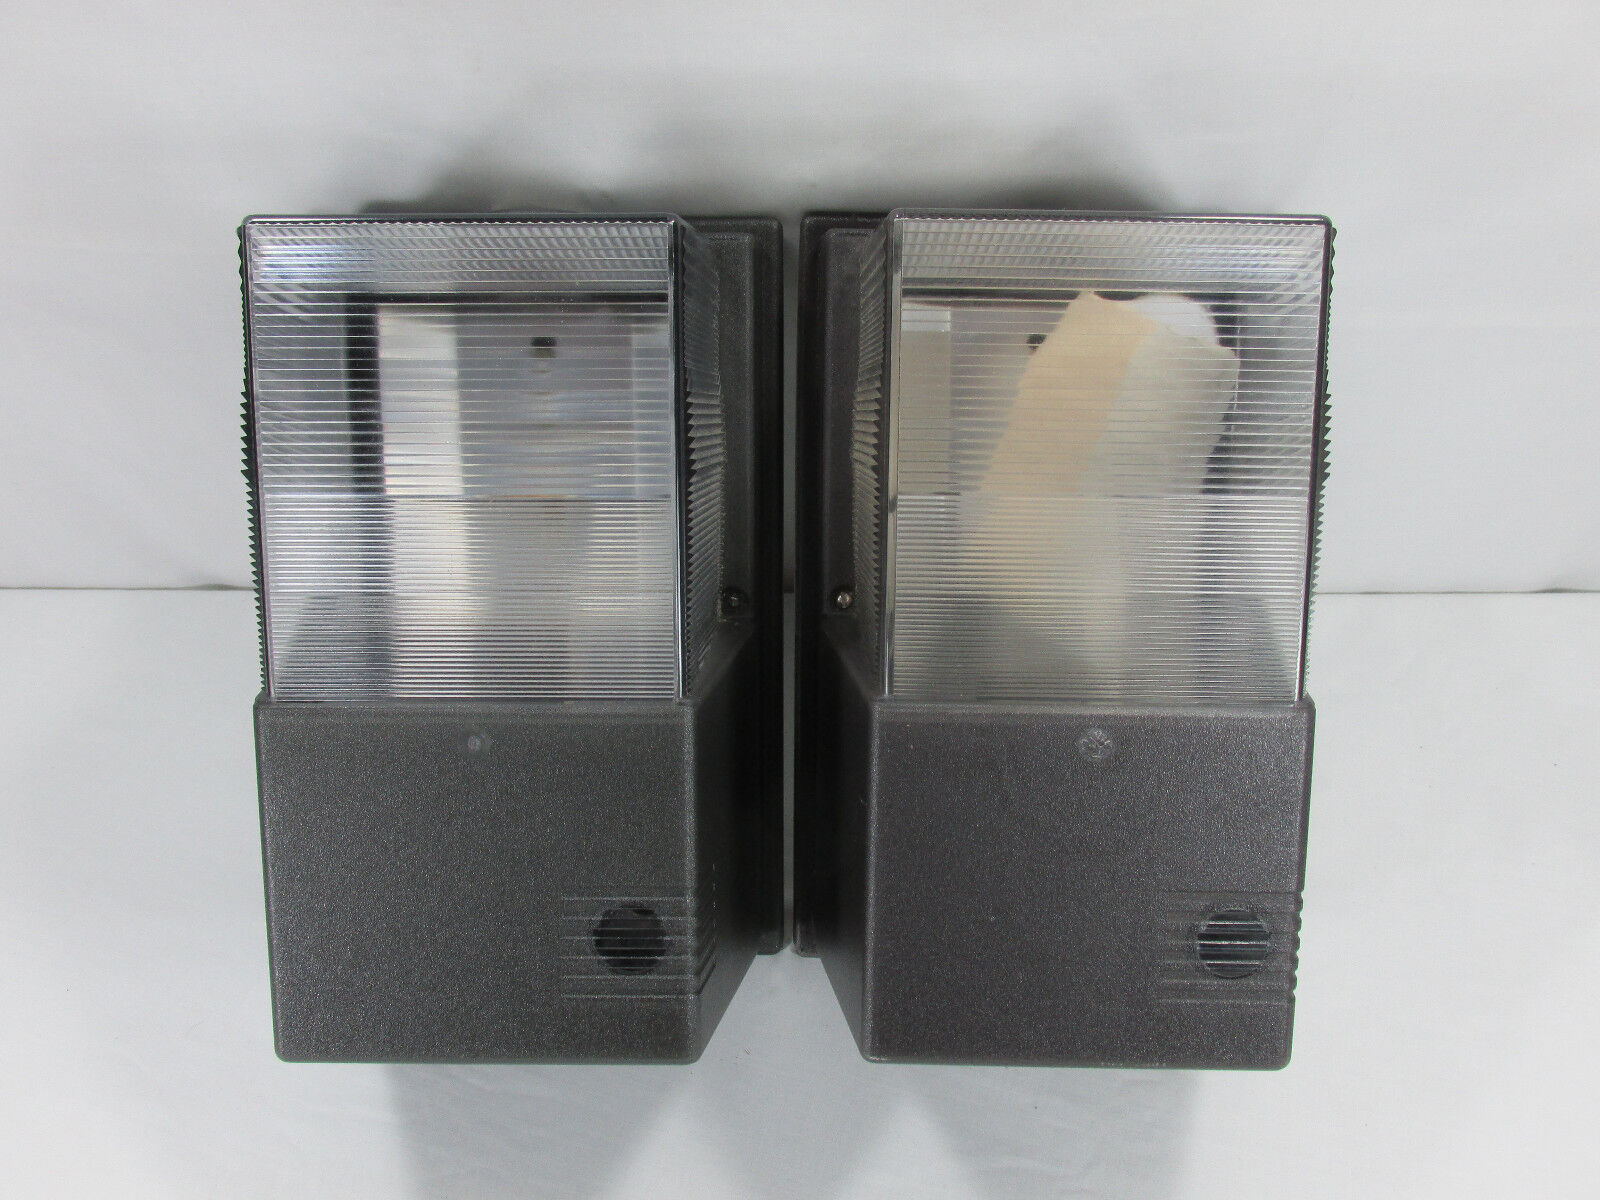 Commercial Industrial Lights Lighting GE Systems Suitable for Wet Locations Lot